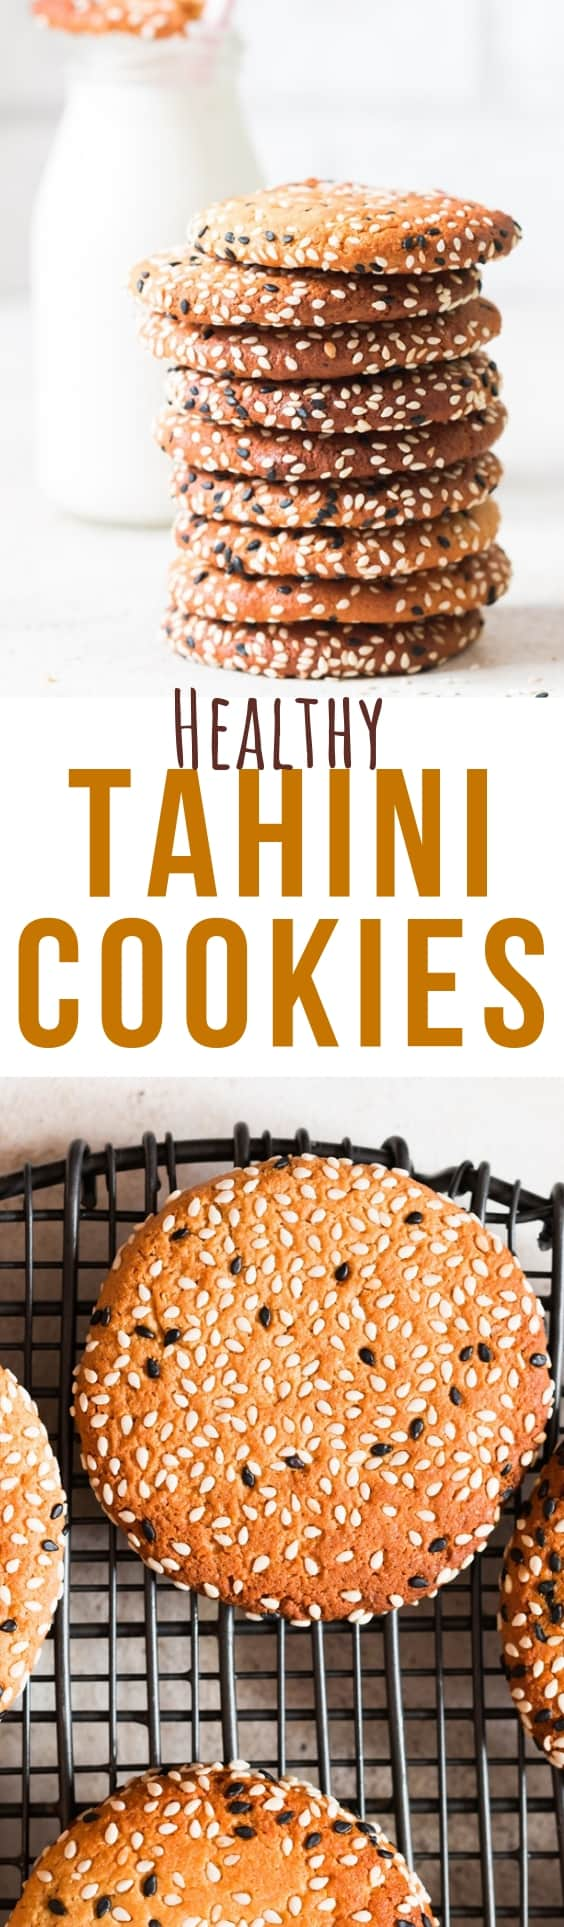 homemade cookies with tahini and text overlay